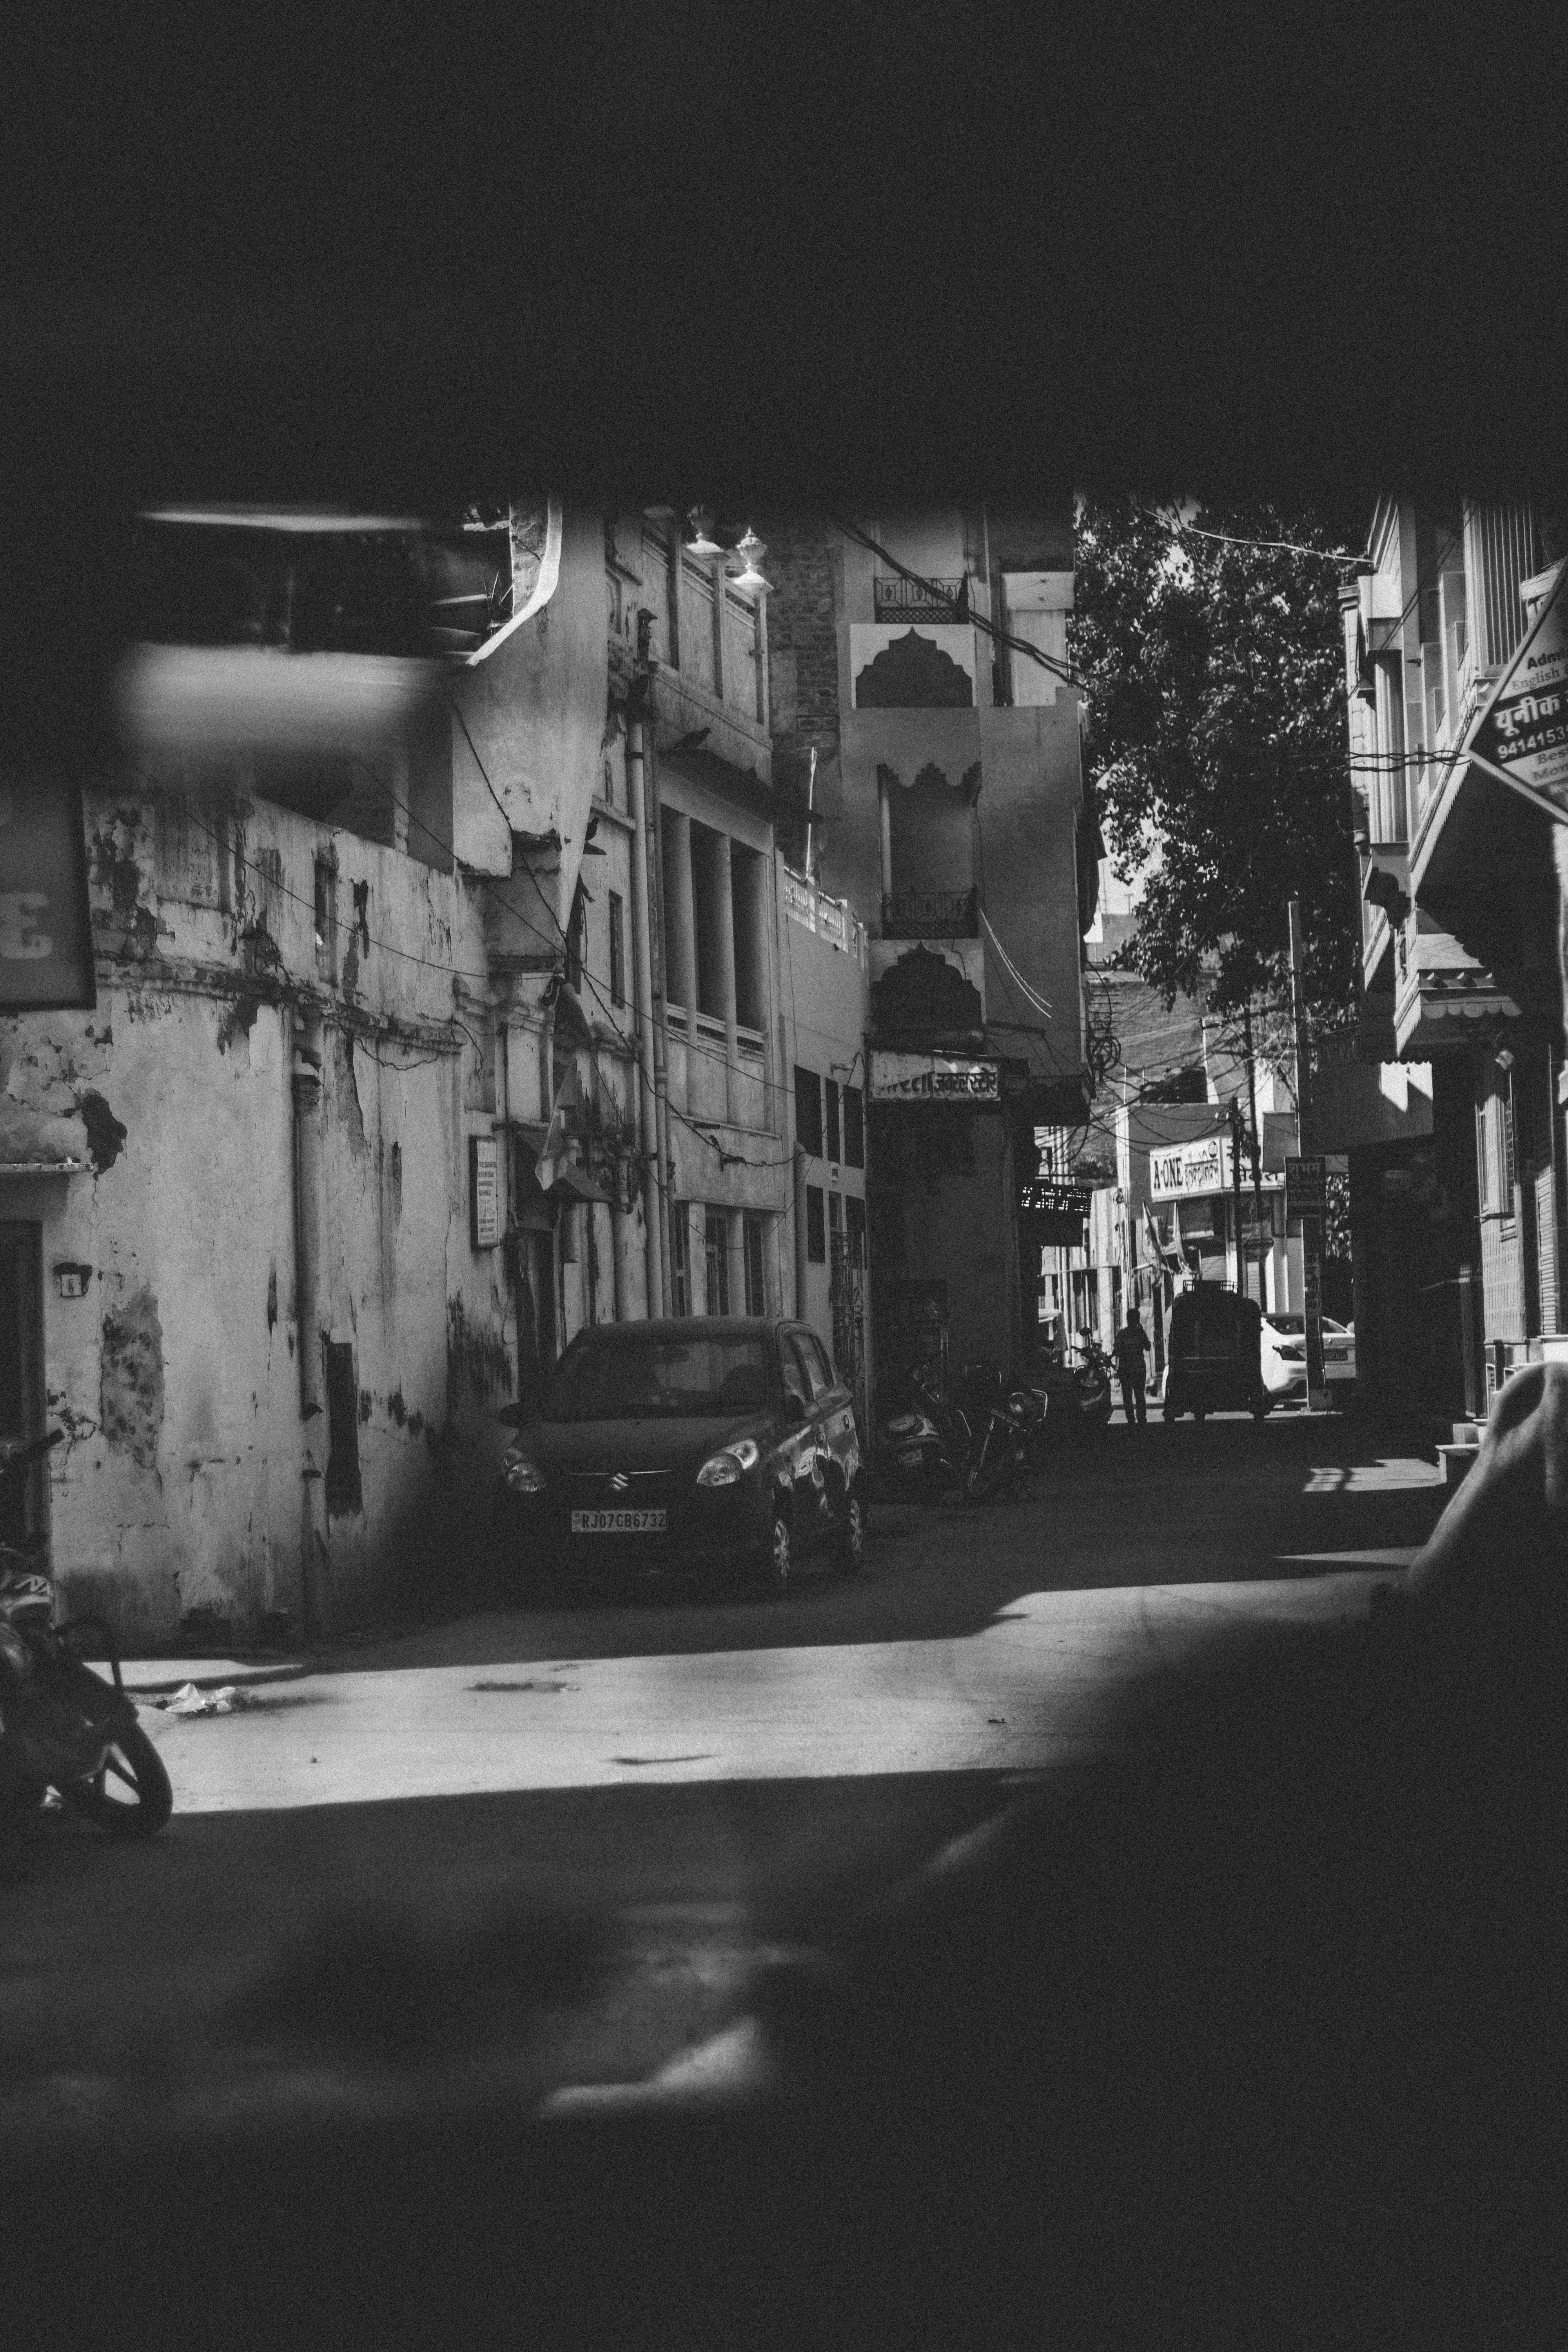 Grayscale Photography of Car and Motorcycle Beside Building